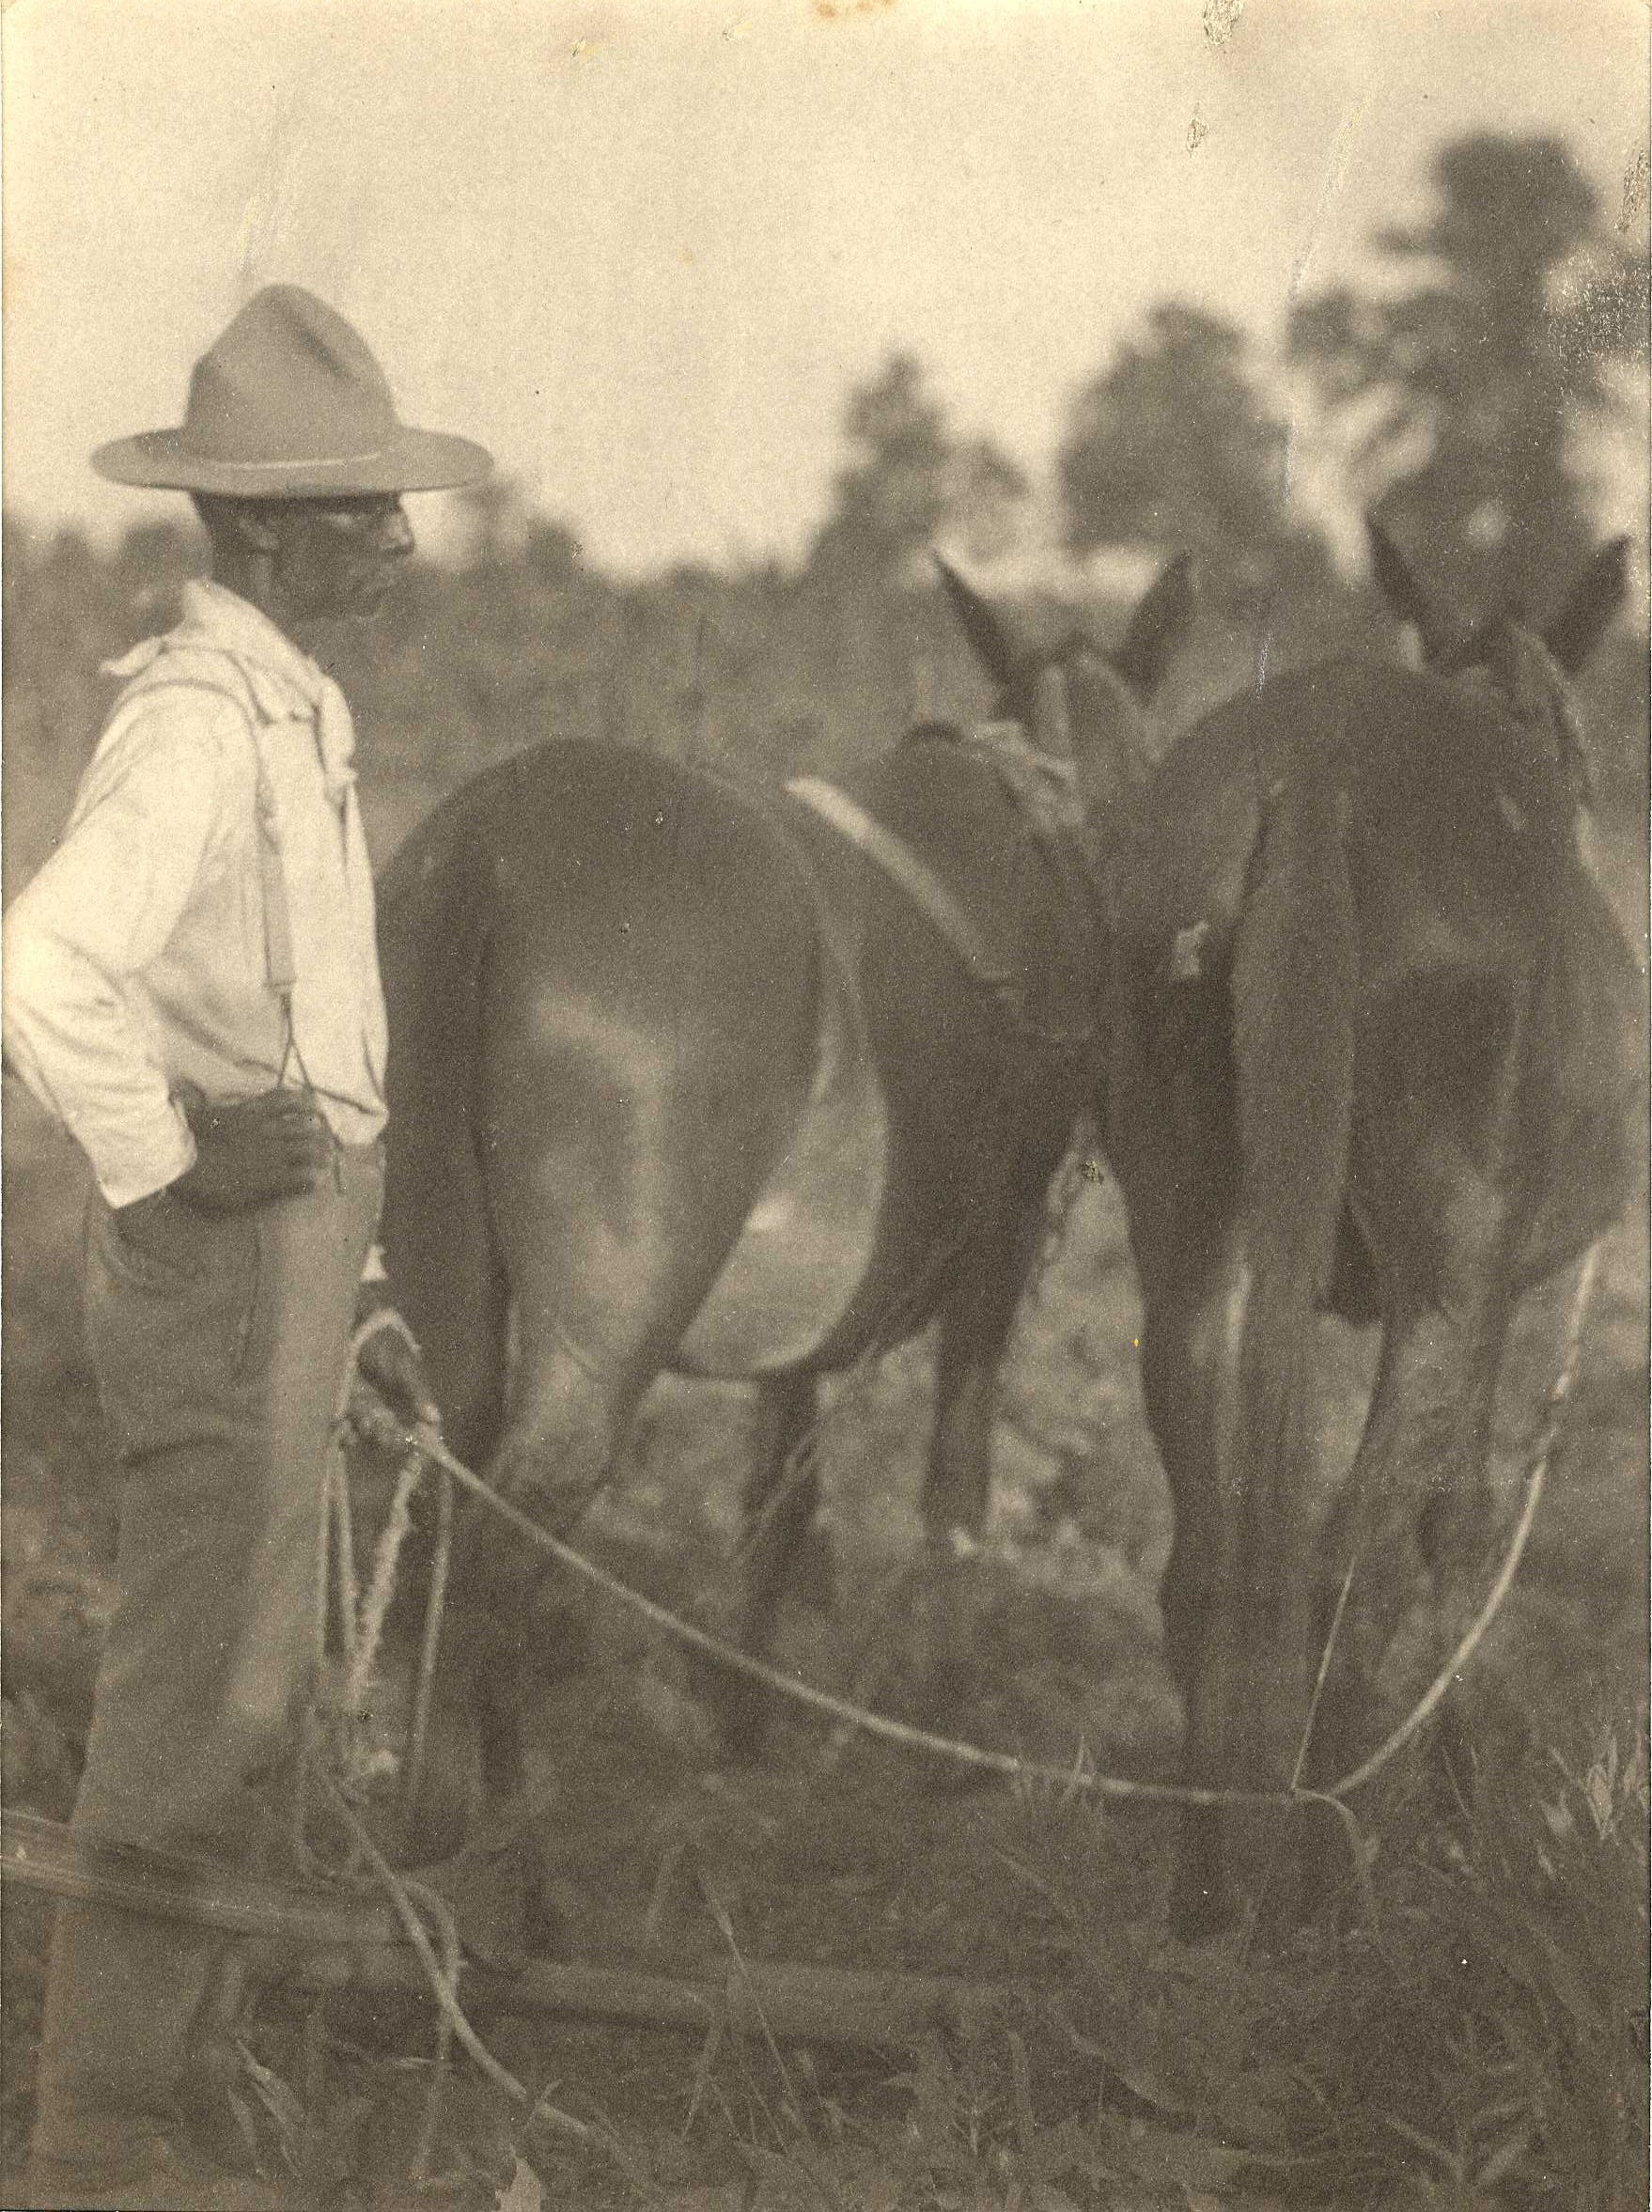 Field worker with two mules, c. 1915